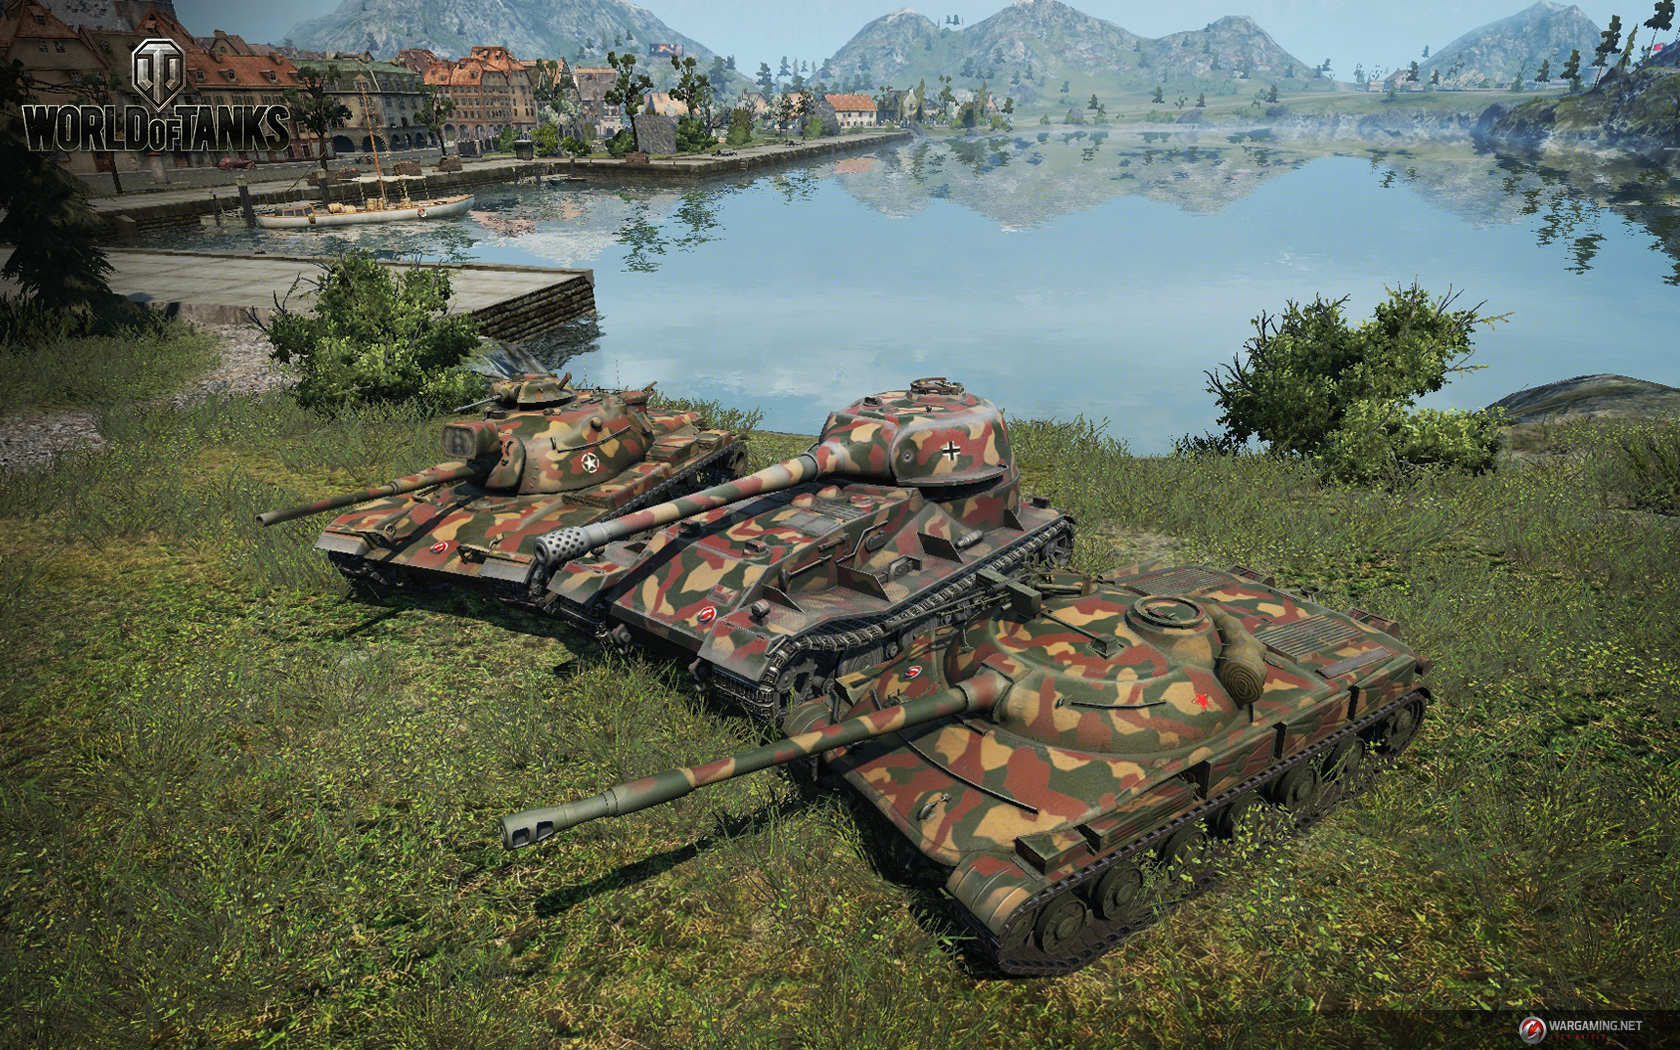 Third campaign overall results announced clan wars world of tanks the cut off for fame points required to win this special pattern was 19561 fame points and 5000 players will receive it see the alley of fame for a full gumiabroncs Image collections